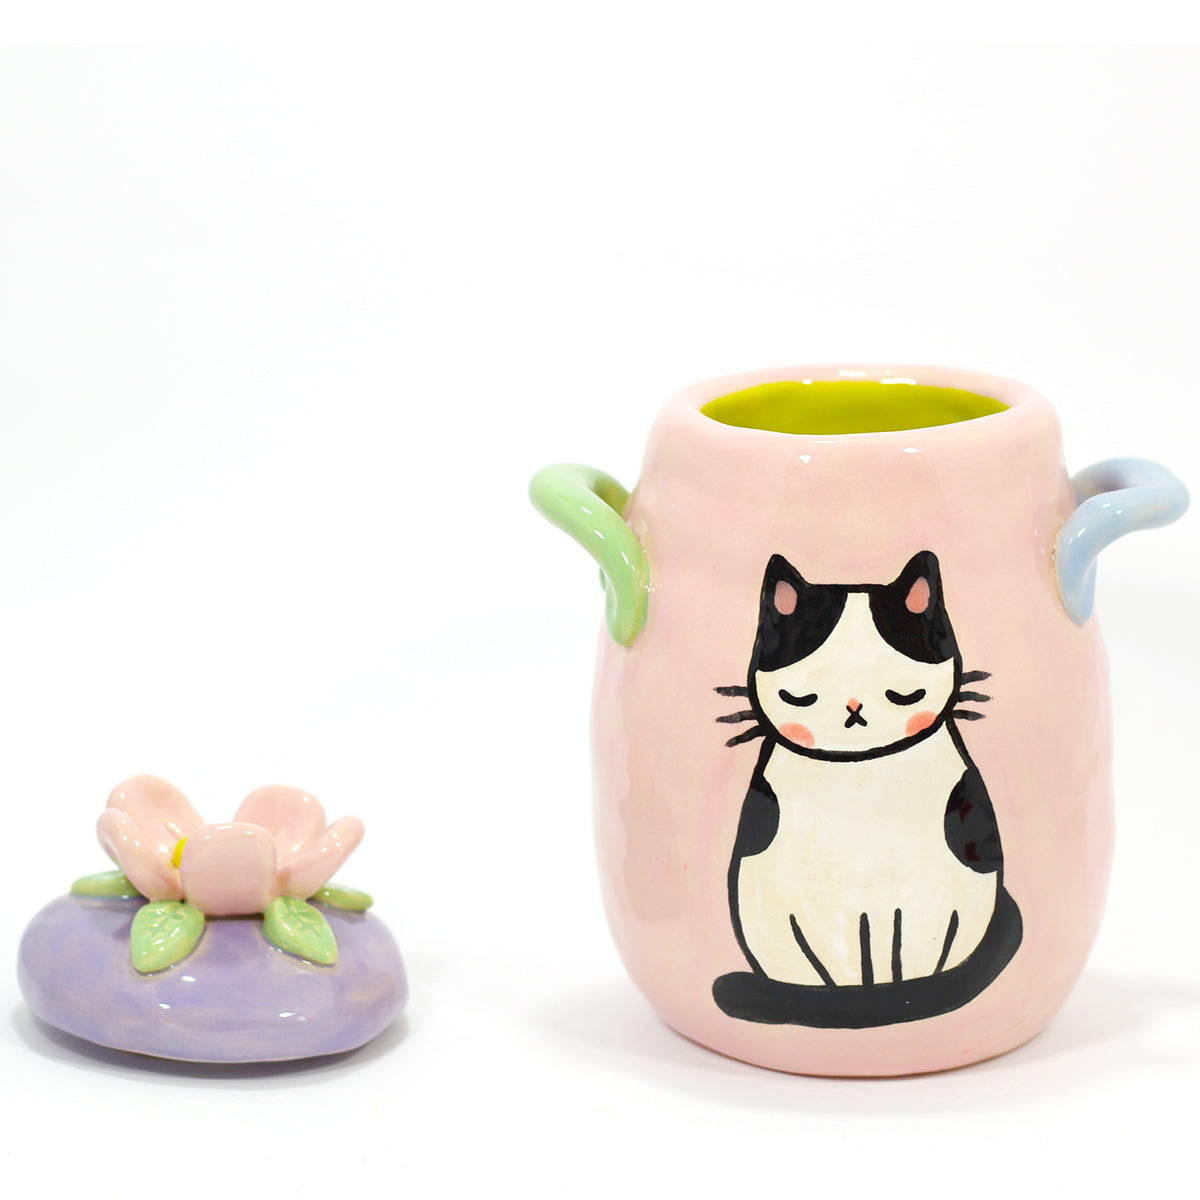 Ceramic Kitty Planter #831 - M